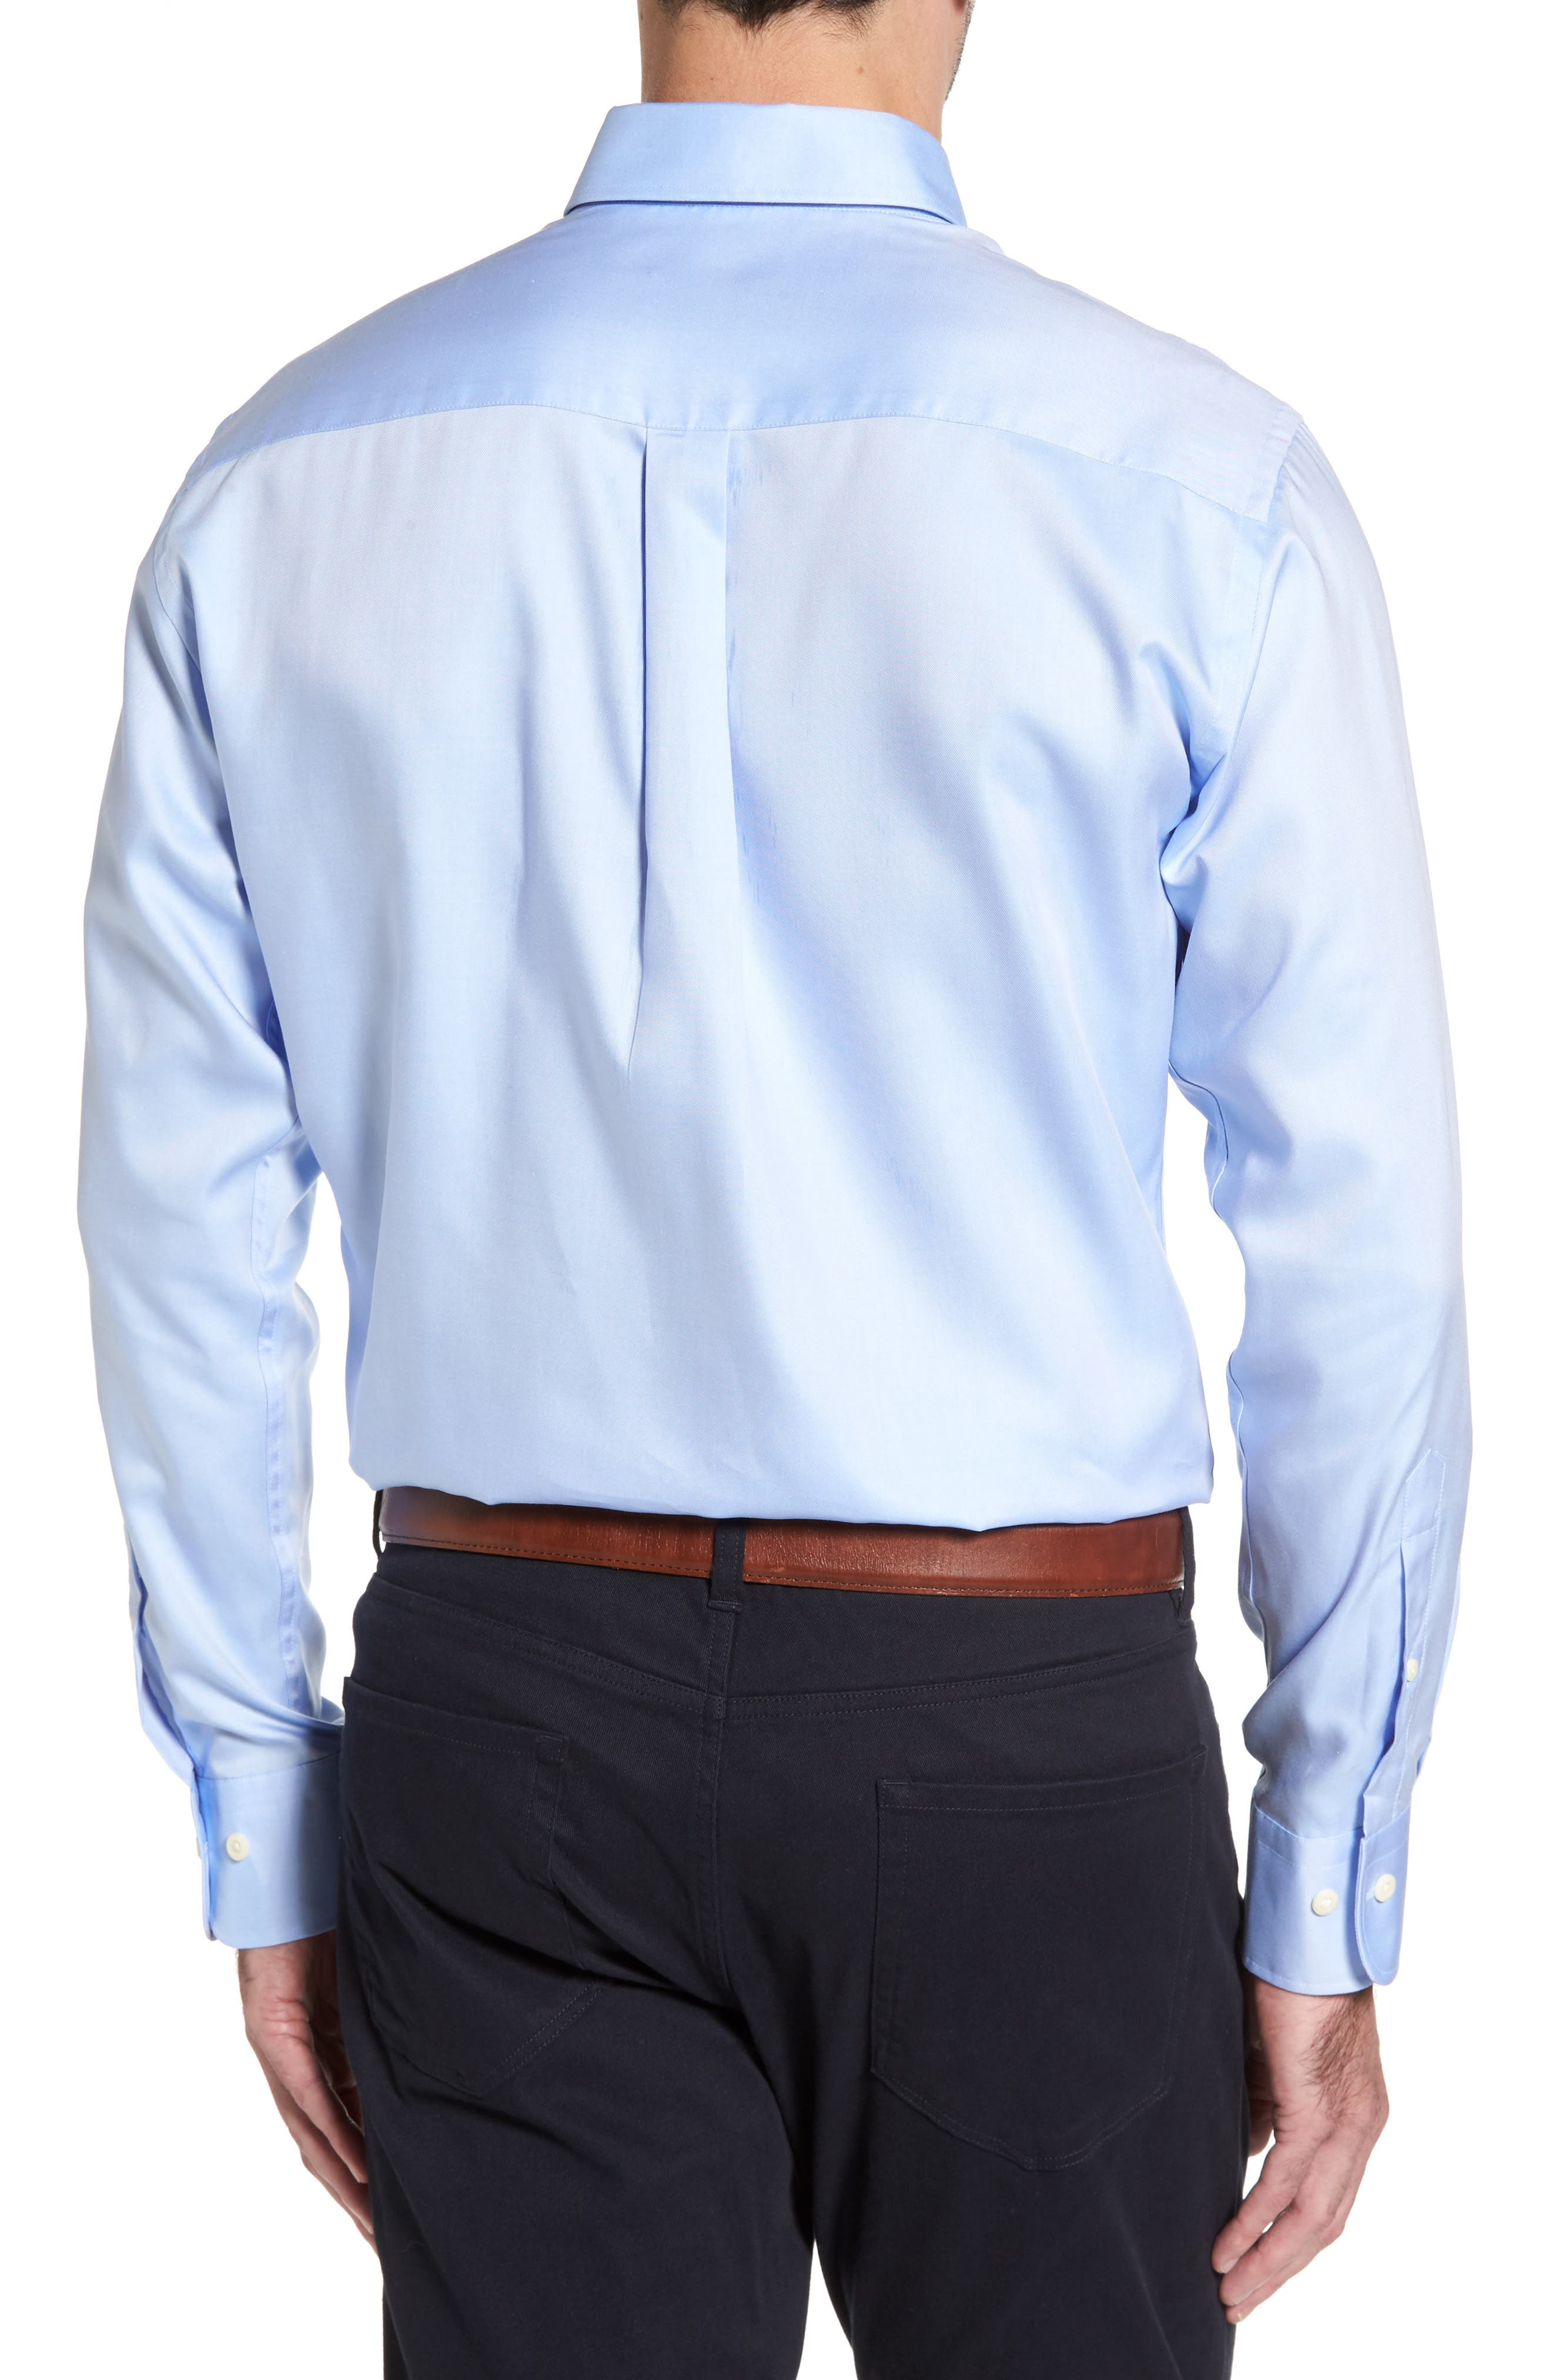 Crown Soft Regular Fit Pinpoint Sport Shirt,                             Alternate thumbnail 2, color,                             WATER'S EDGE